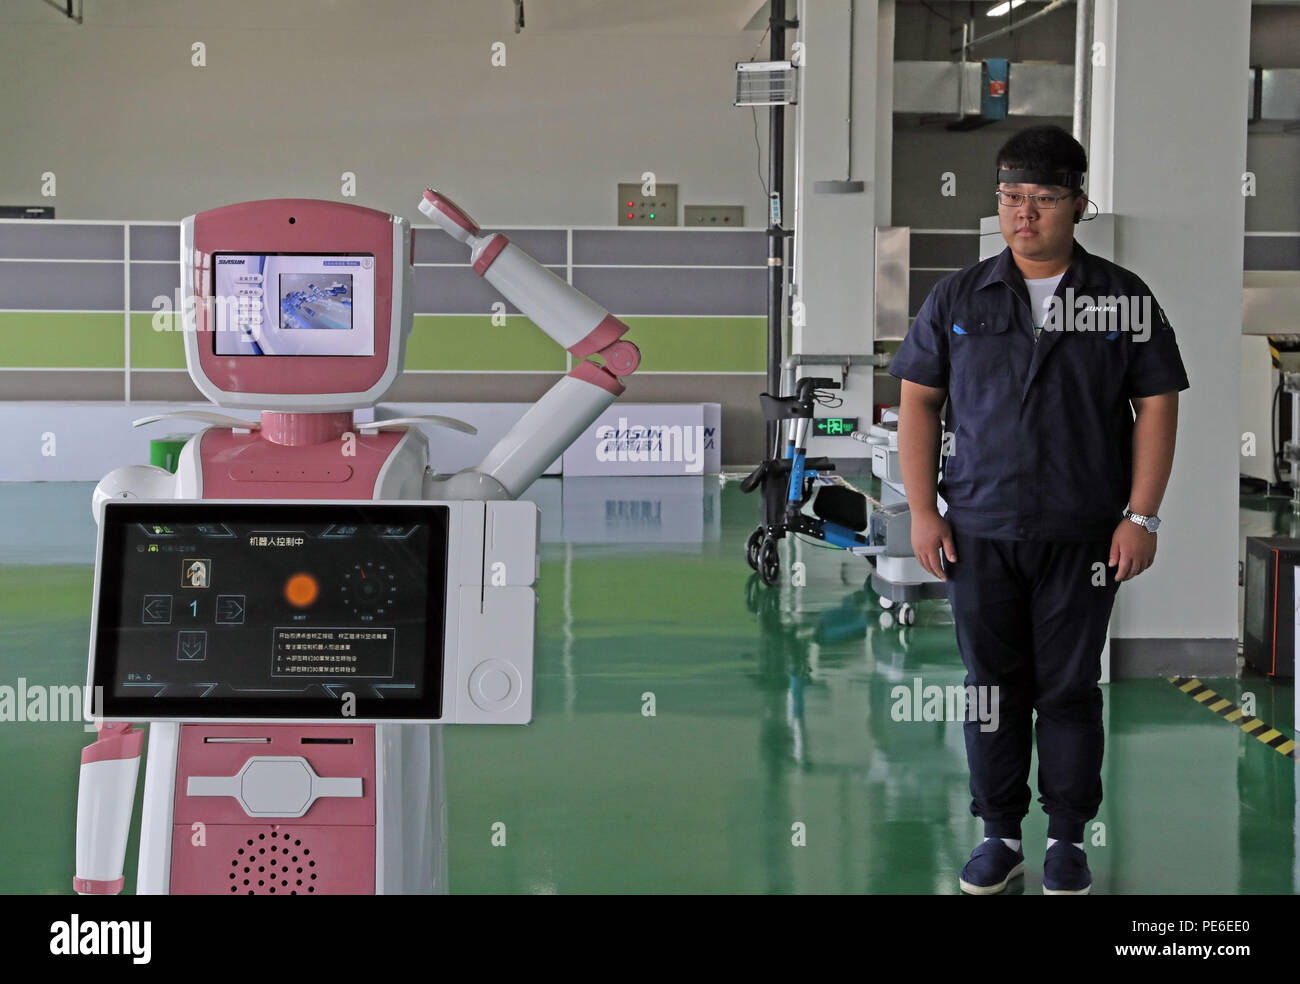 Shenyang. 16th July, 2018. Photo taken on July 16, 2018 shows a brainwave control robot at a factory of SIASUN in Shenyang, capital of northeast China's Liaoning Province. In recent years, by developing robots and intelligence industry, Shenyang has become a new engine for economic reform and upgrading in Liaoning. Credit: Yang Qing/Xinhua/Alamy Live News Stock Photo